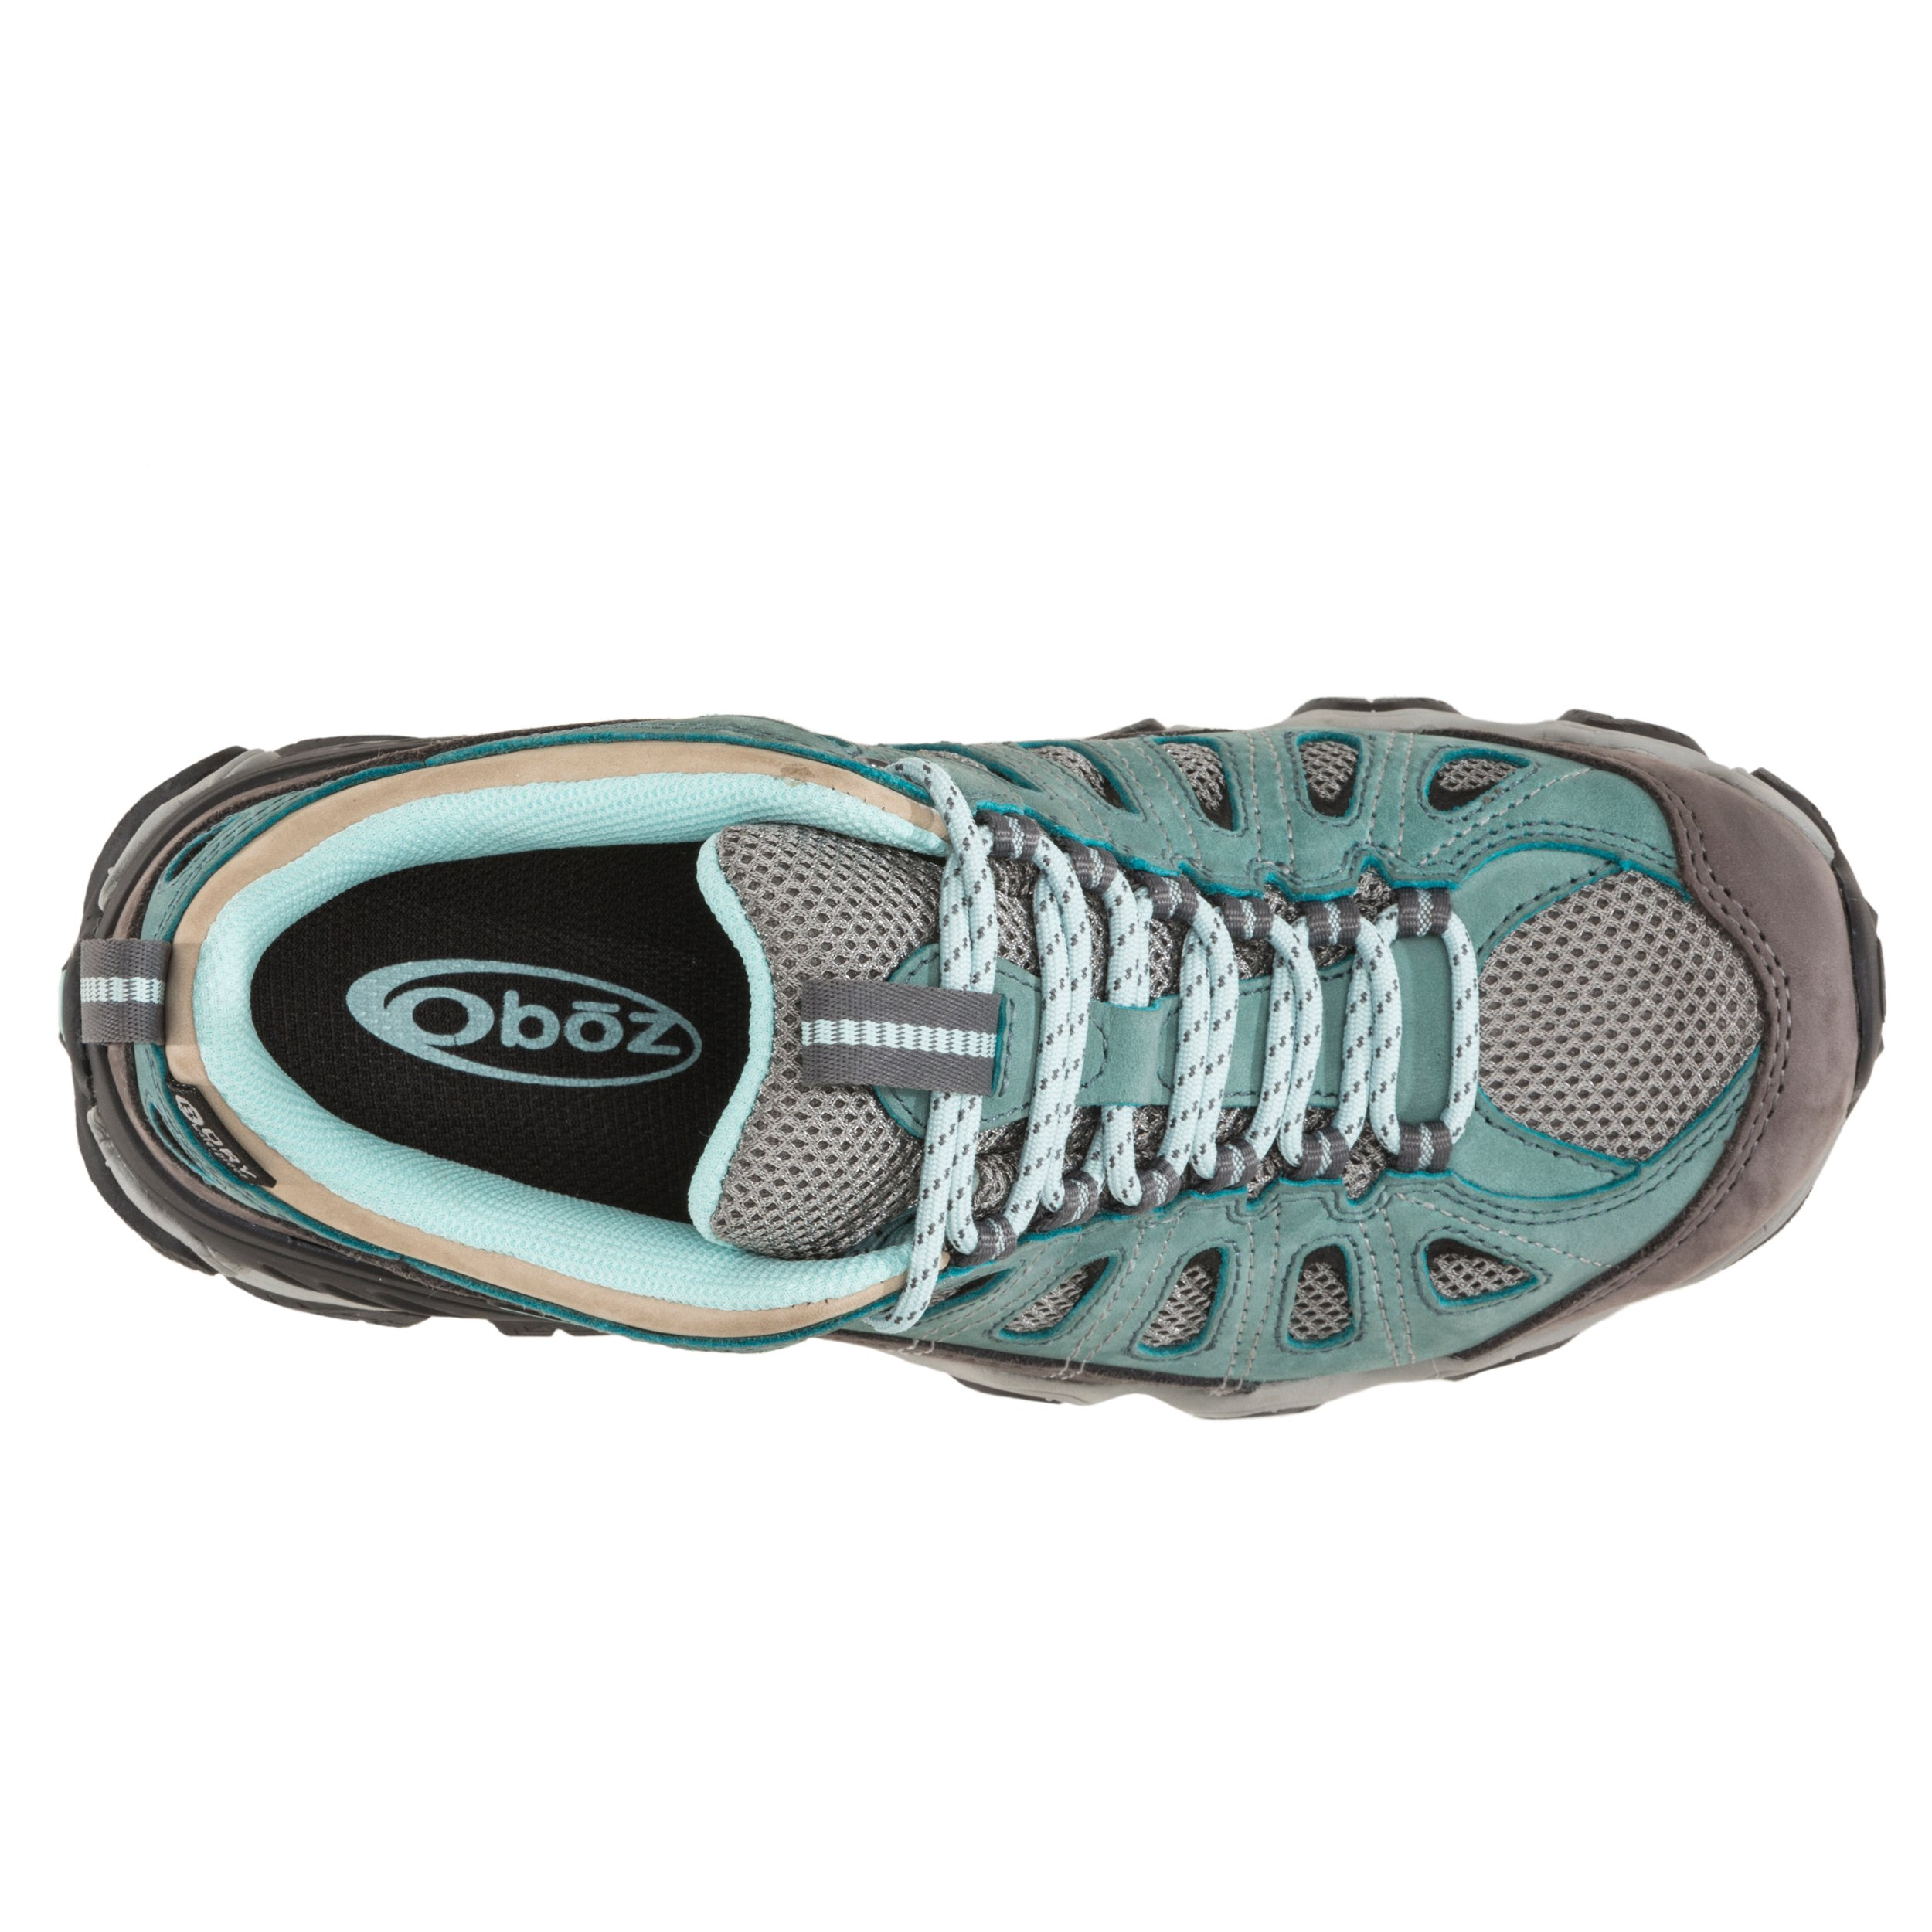 Oboz Sawtooth Low BDry Hiking Shoe - Women's Mineral Blue 8 by Oboz (Image #4)